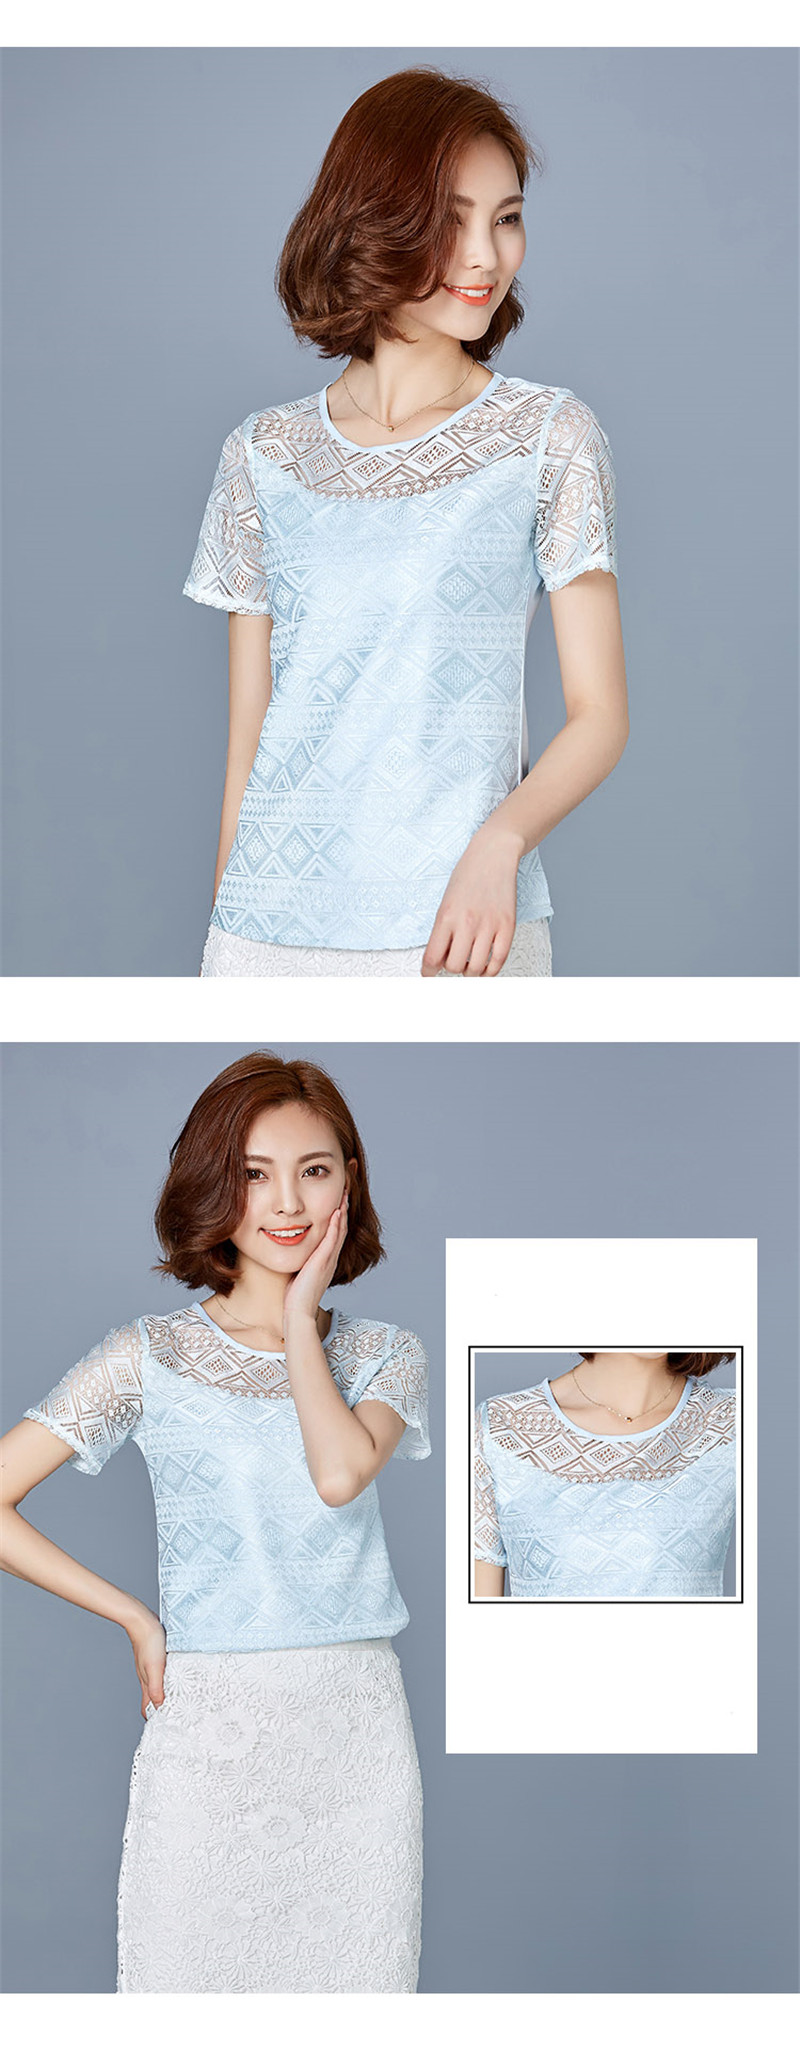 HTB15bRfPFXXXXXCXpXXq6xXFXXXK - New women tops lace chiffon blouse korean office female clothing